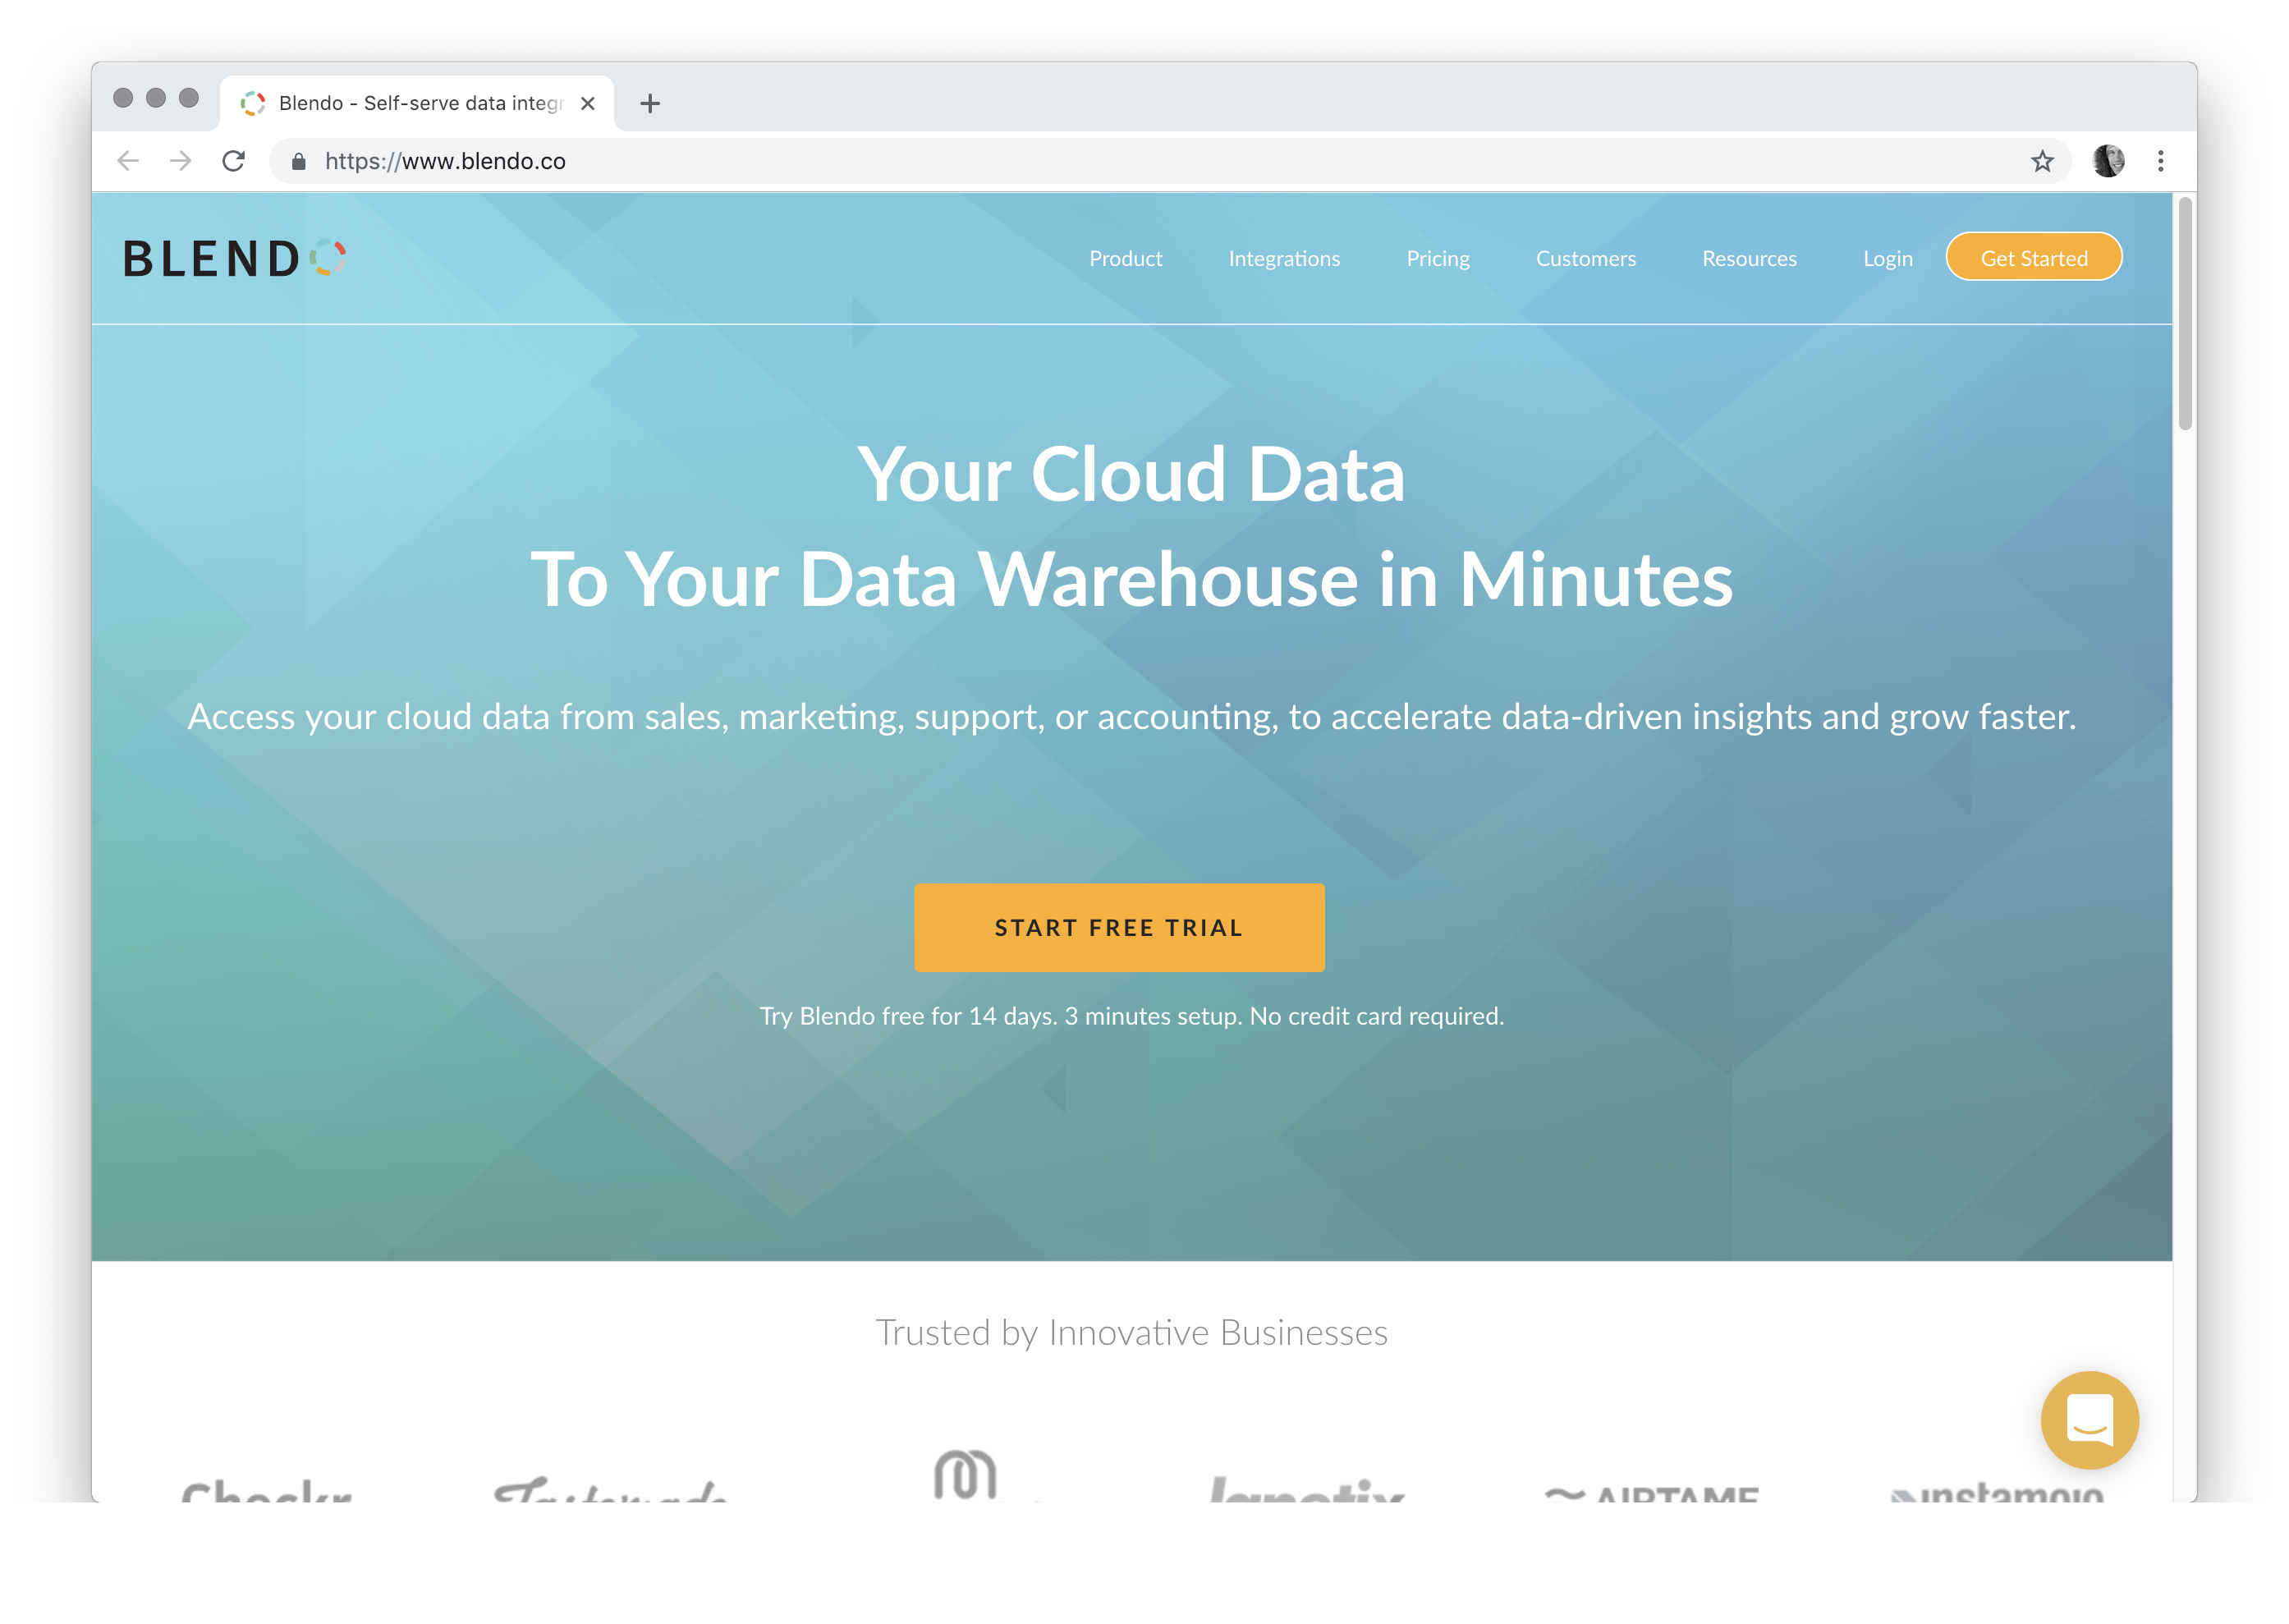 Your Cloud Data To Your Data Warehouse in Minutes Access your cloud data from sales, marketing, support, or accounting, to accelerate data-driven insights and grow faster.